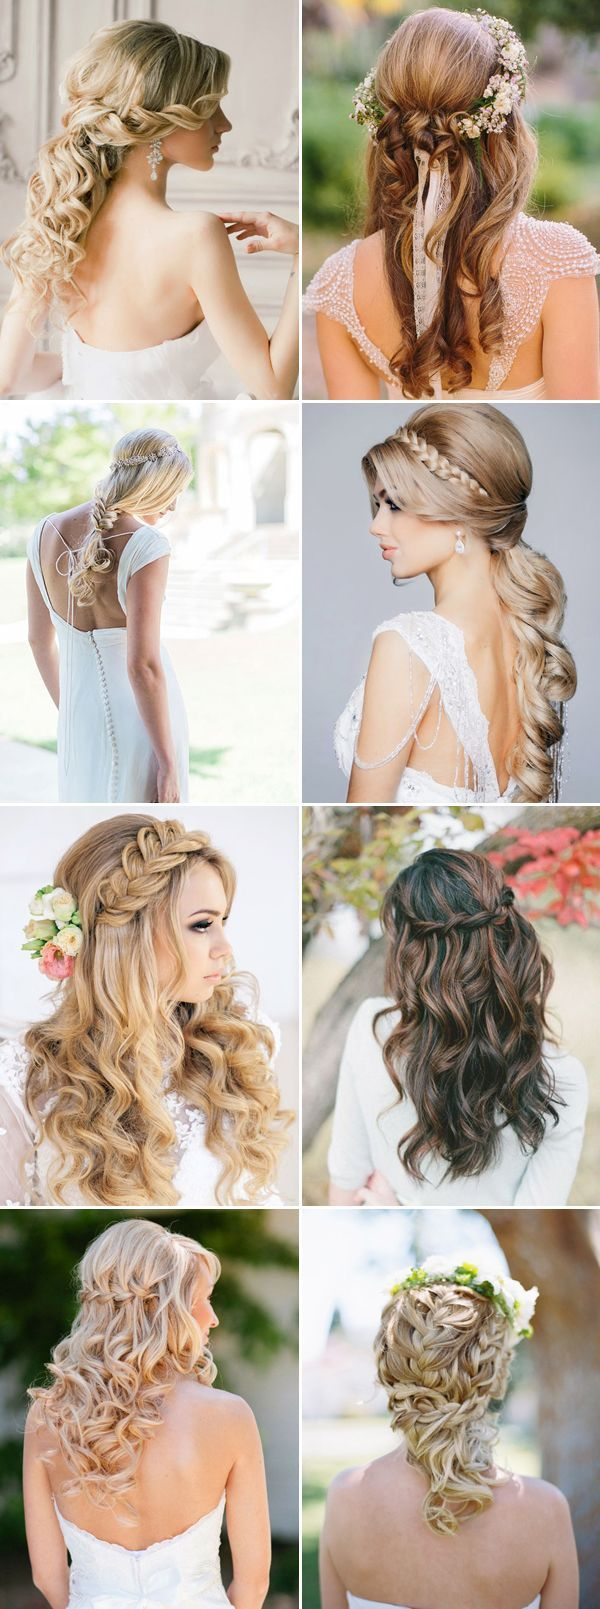 Half Up Half Down Wedding Hairstyles Pictures, Photos, and Images ...